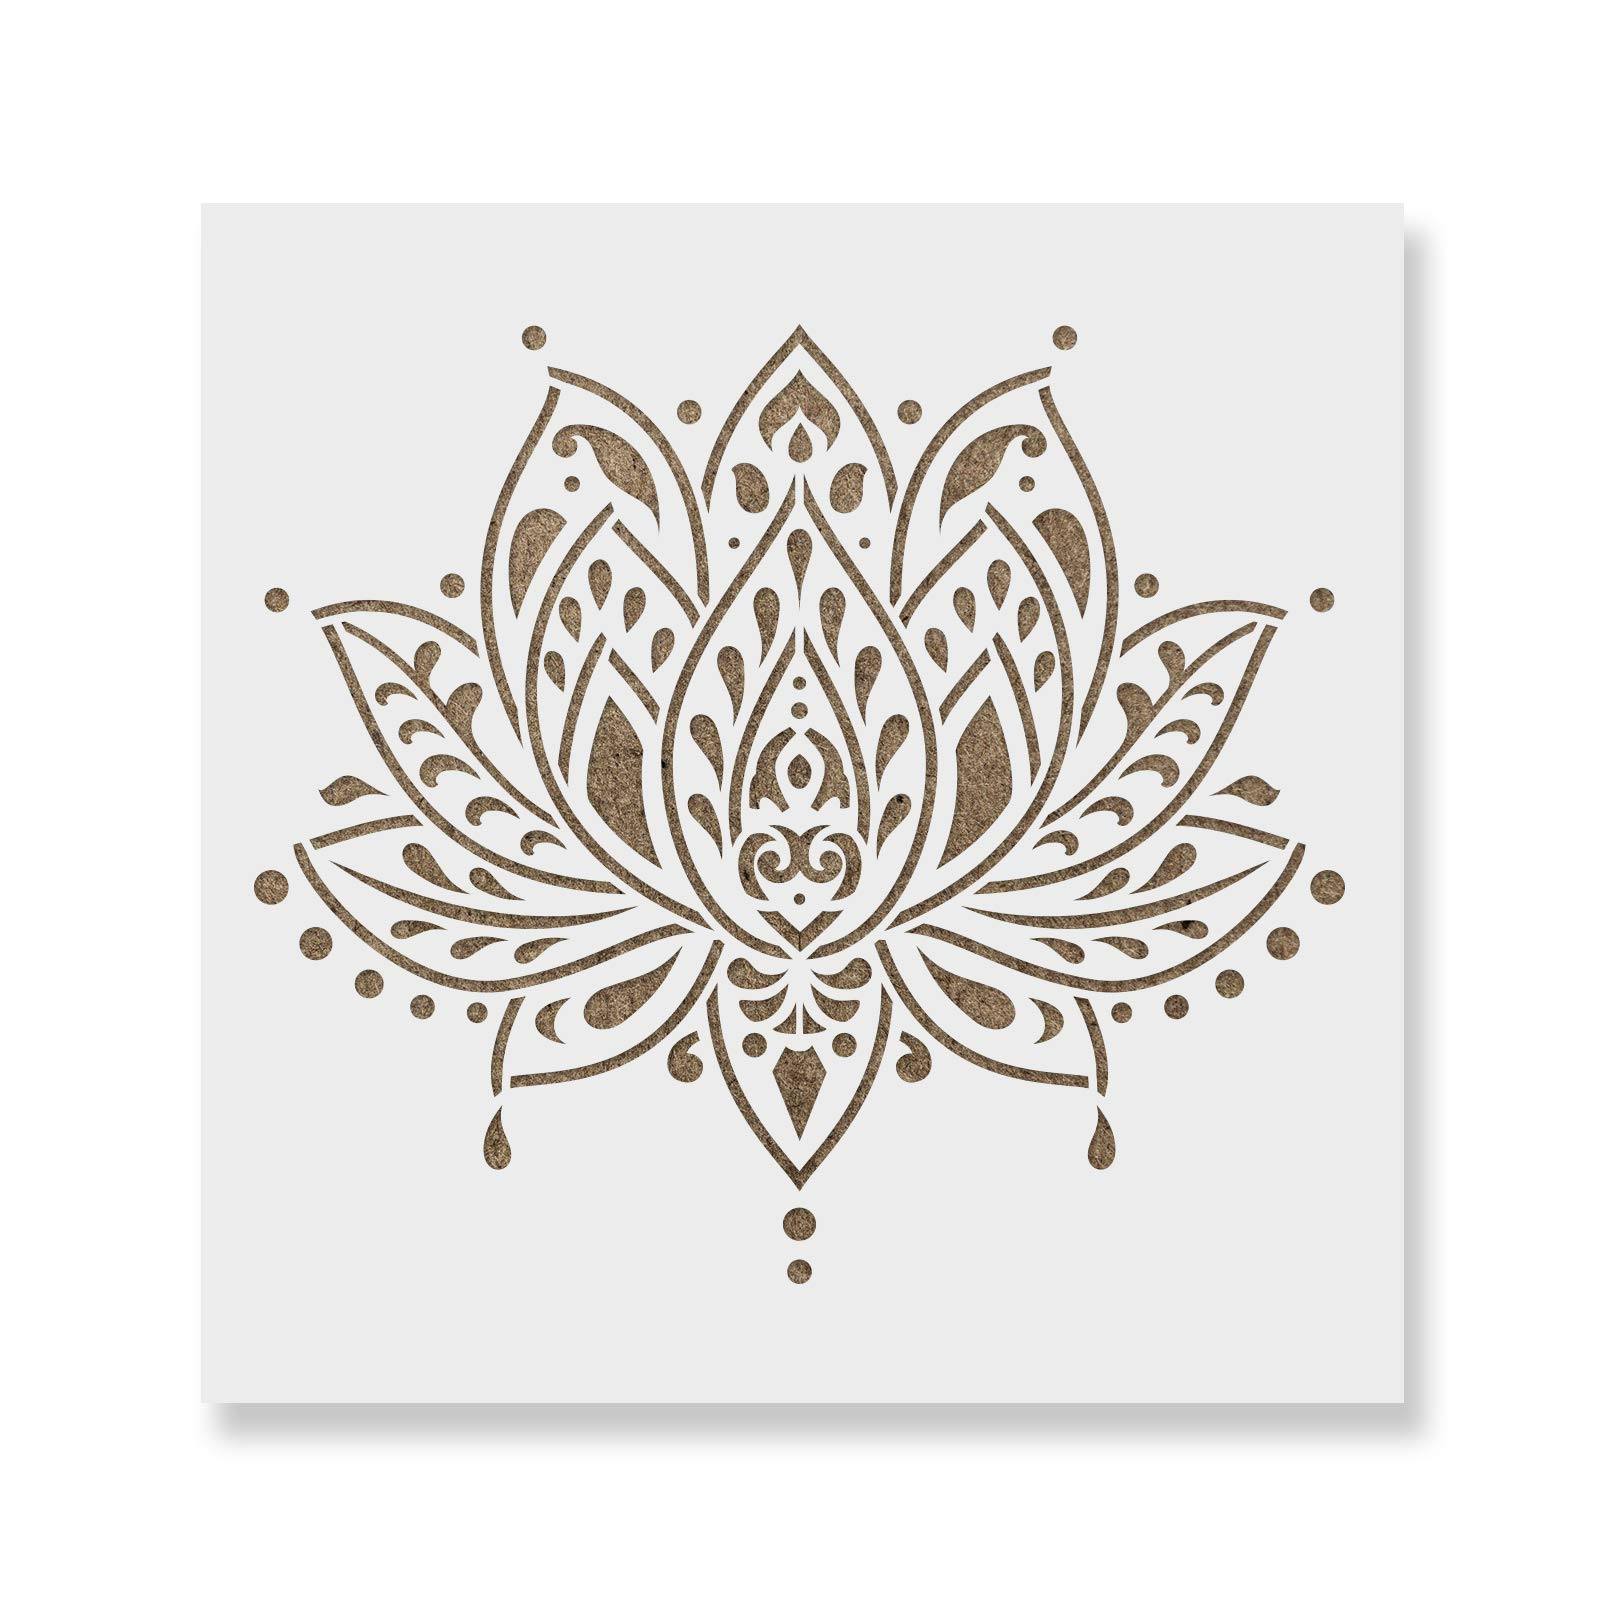 Sacred Lotus Flower Stencil Template for Walls and Crafts - Reusable Stencils for Painting in Small & Large Sizes by Stencil Revolution